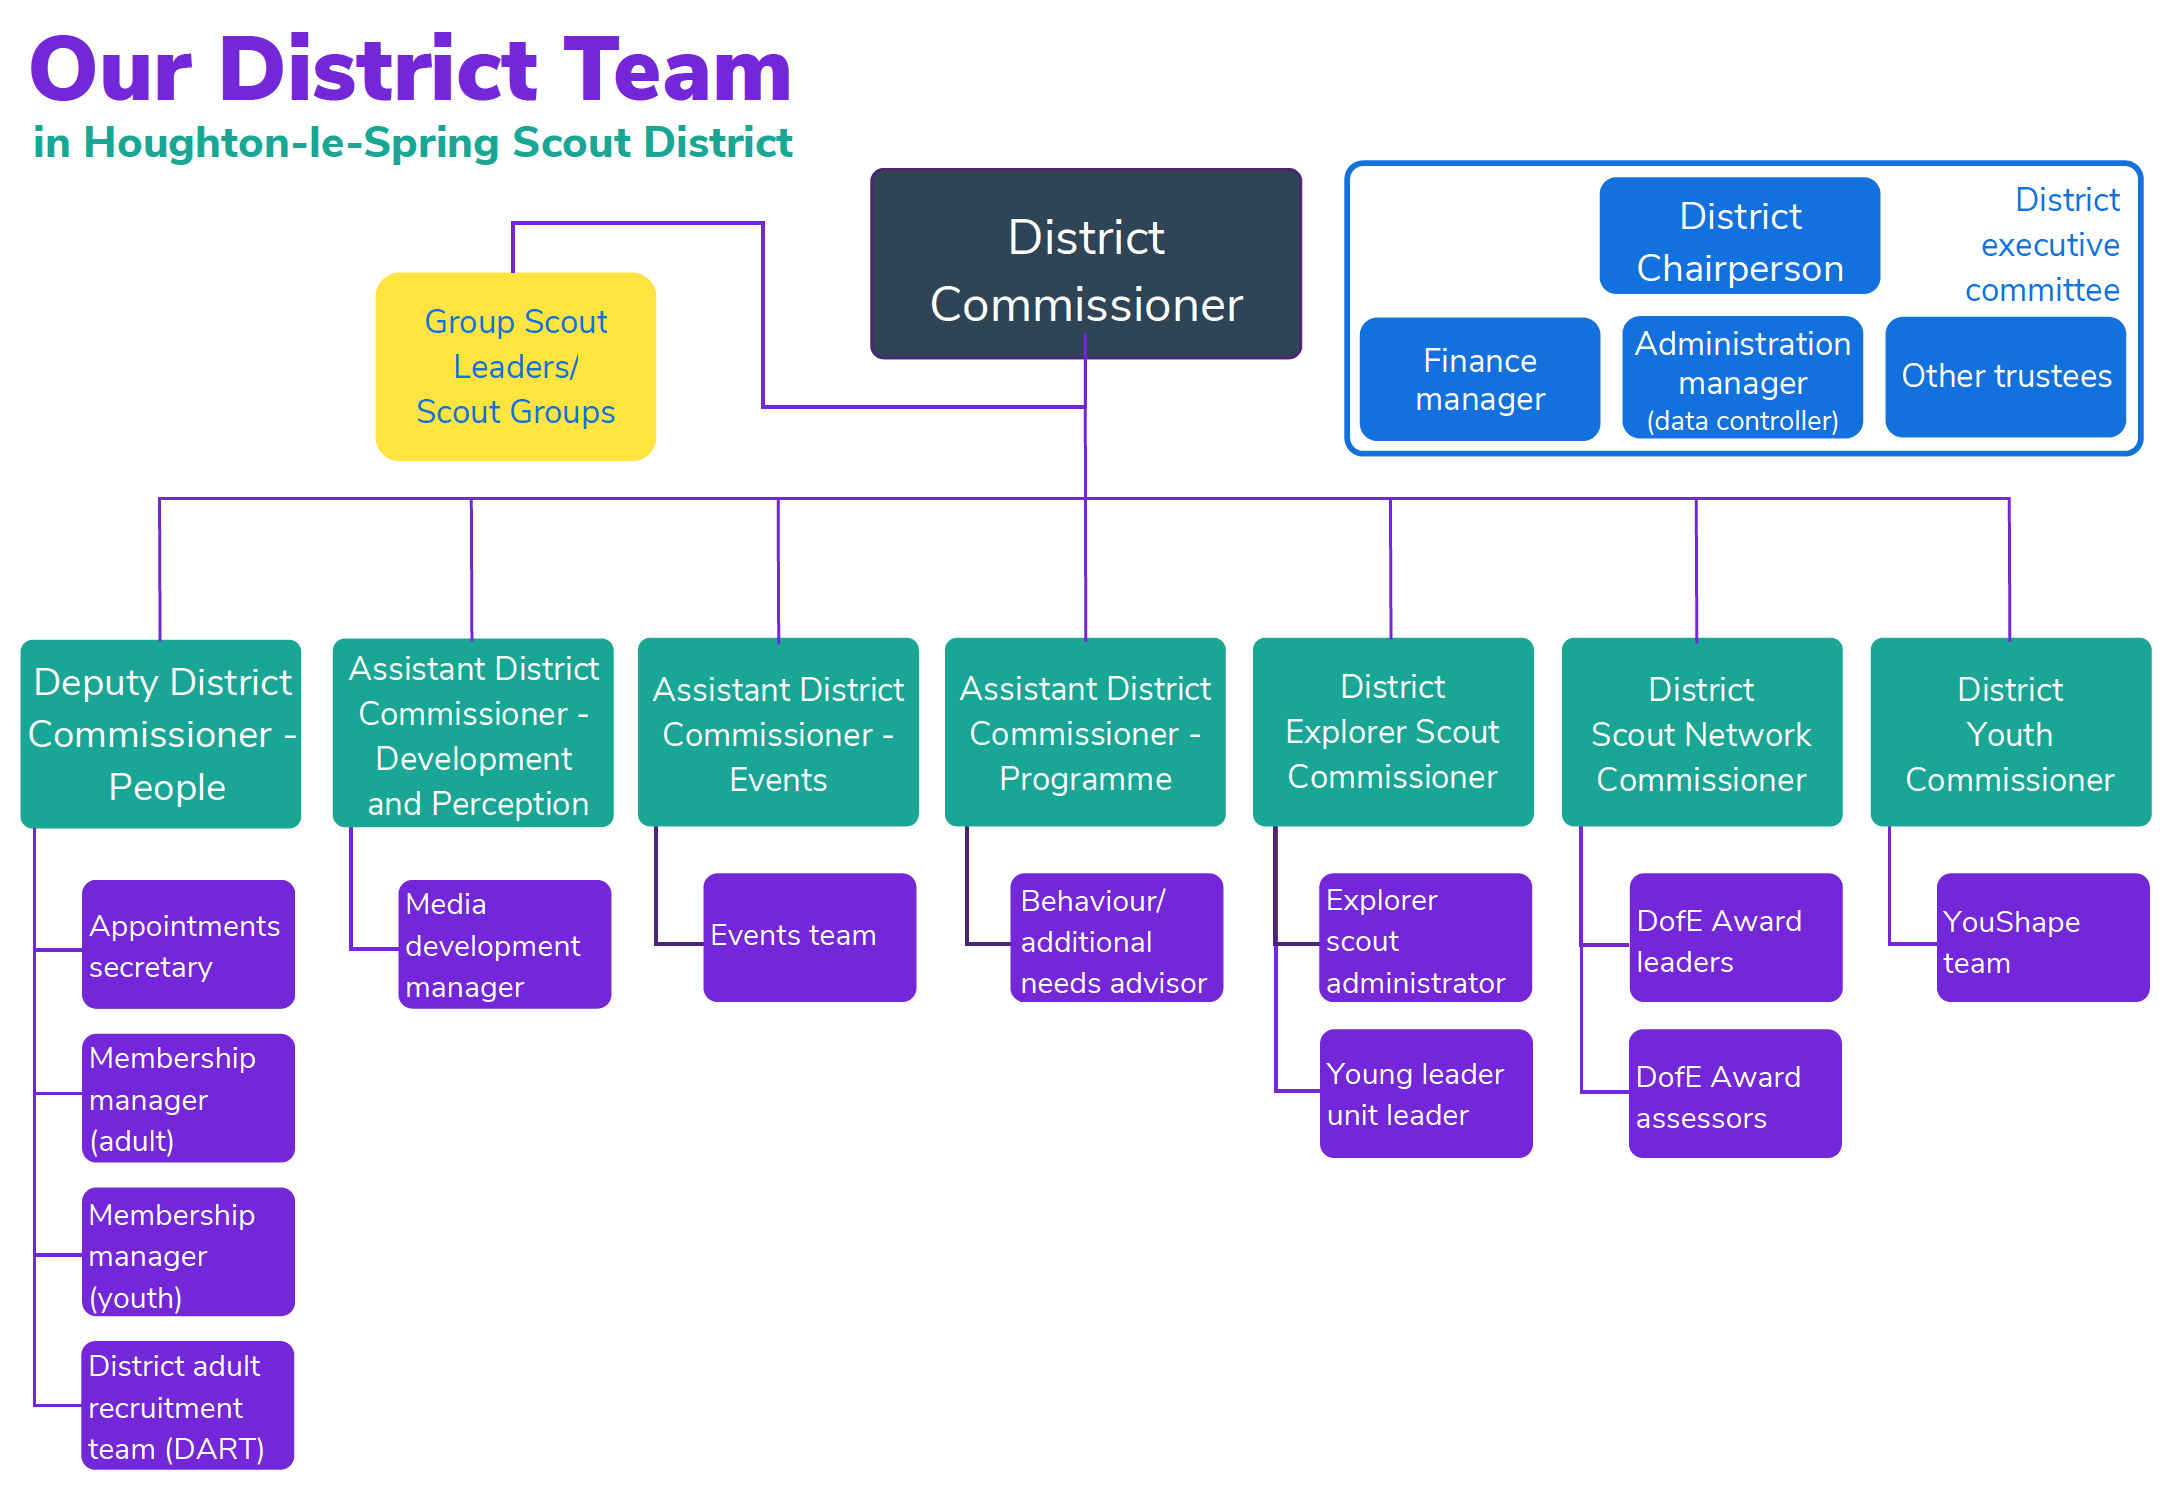 Our district team